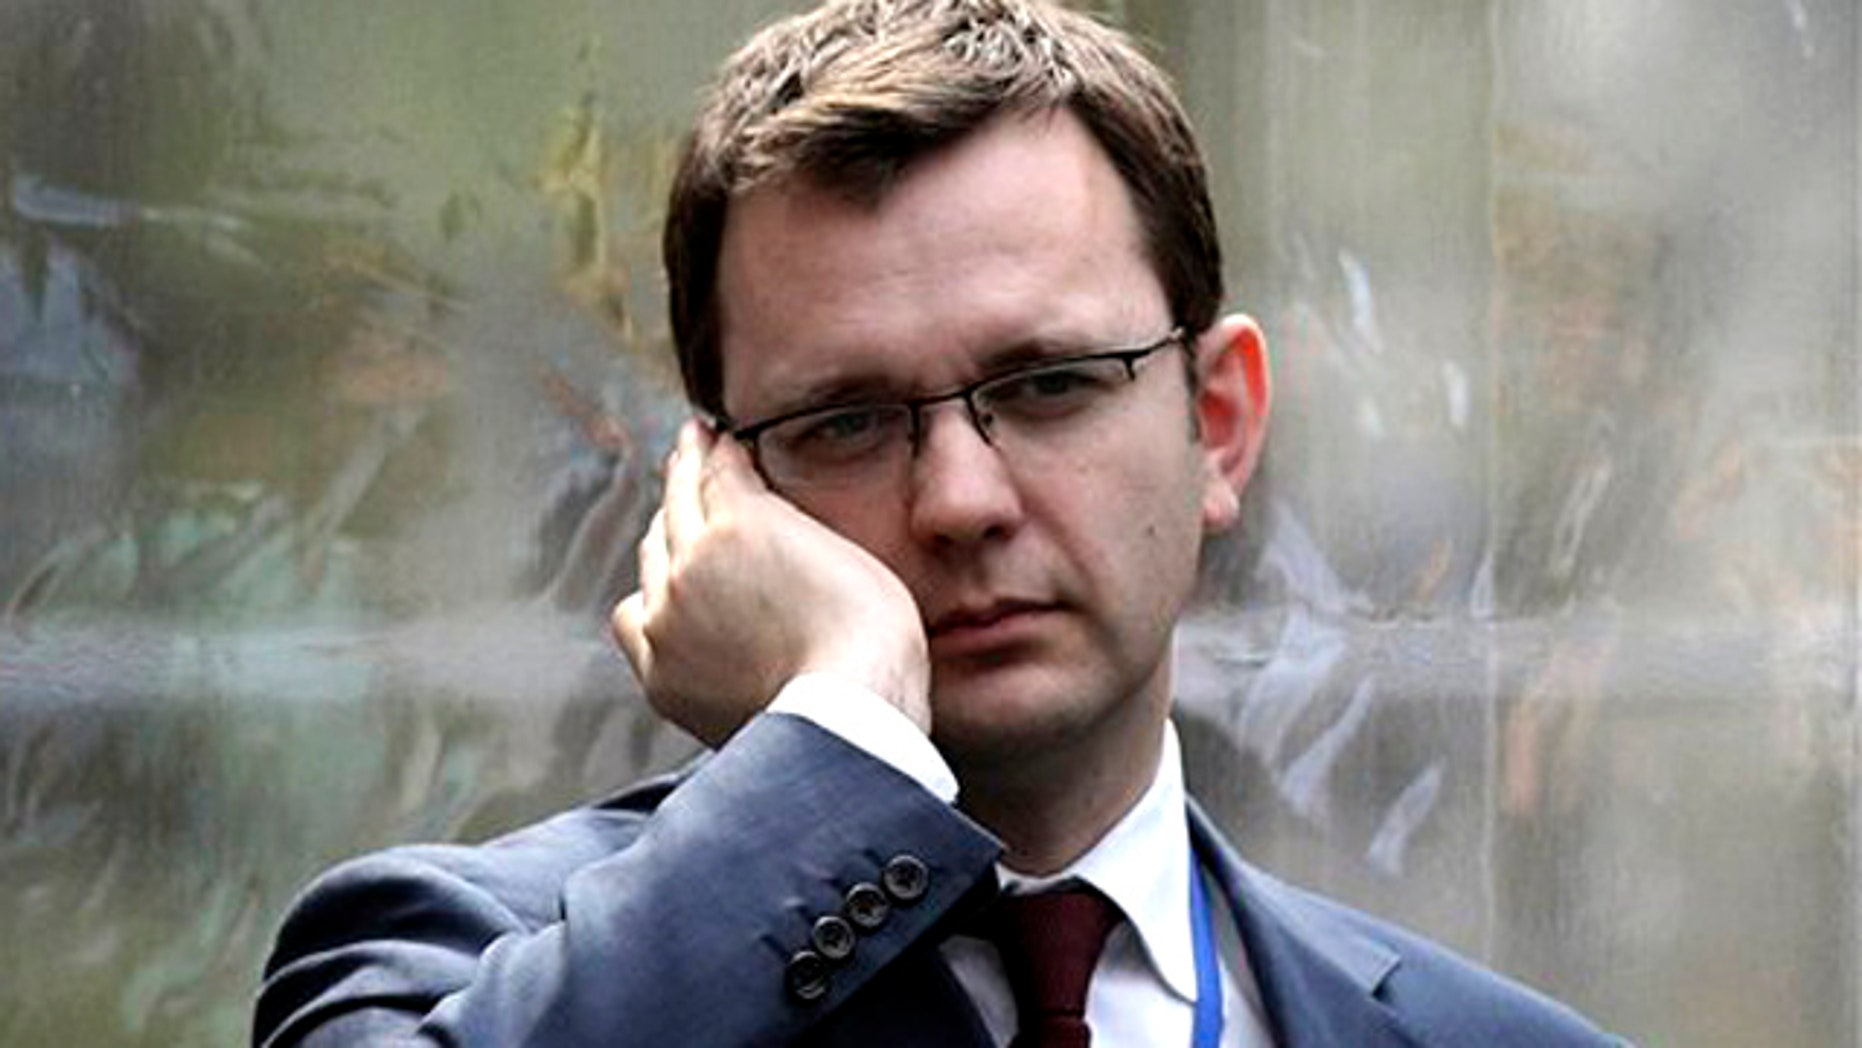 In this April 13, 2010 file photo, Andy Coulson, formerly editor of the tabloid News of the World, and later David Cameron's director of communications, speaks on a mobile phone in London